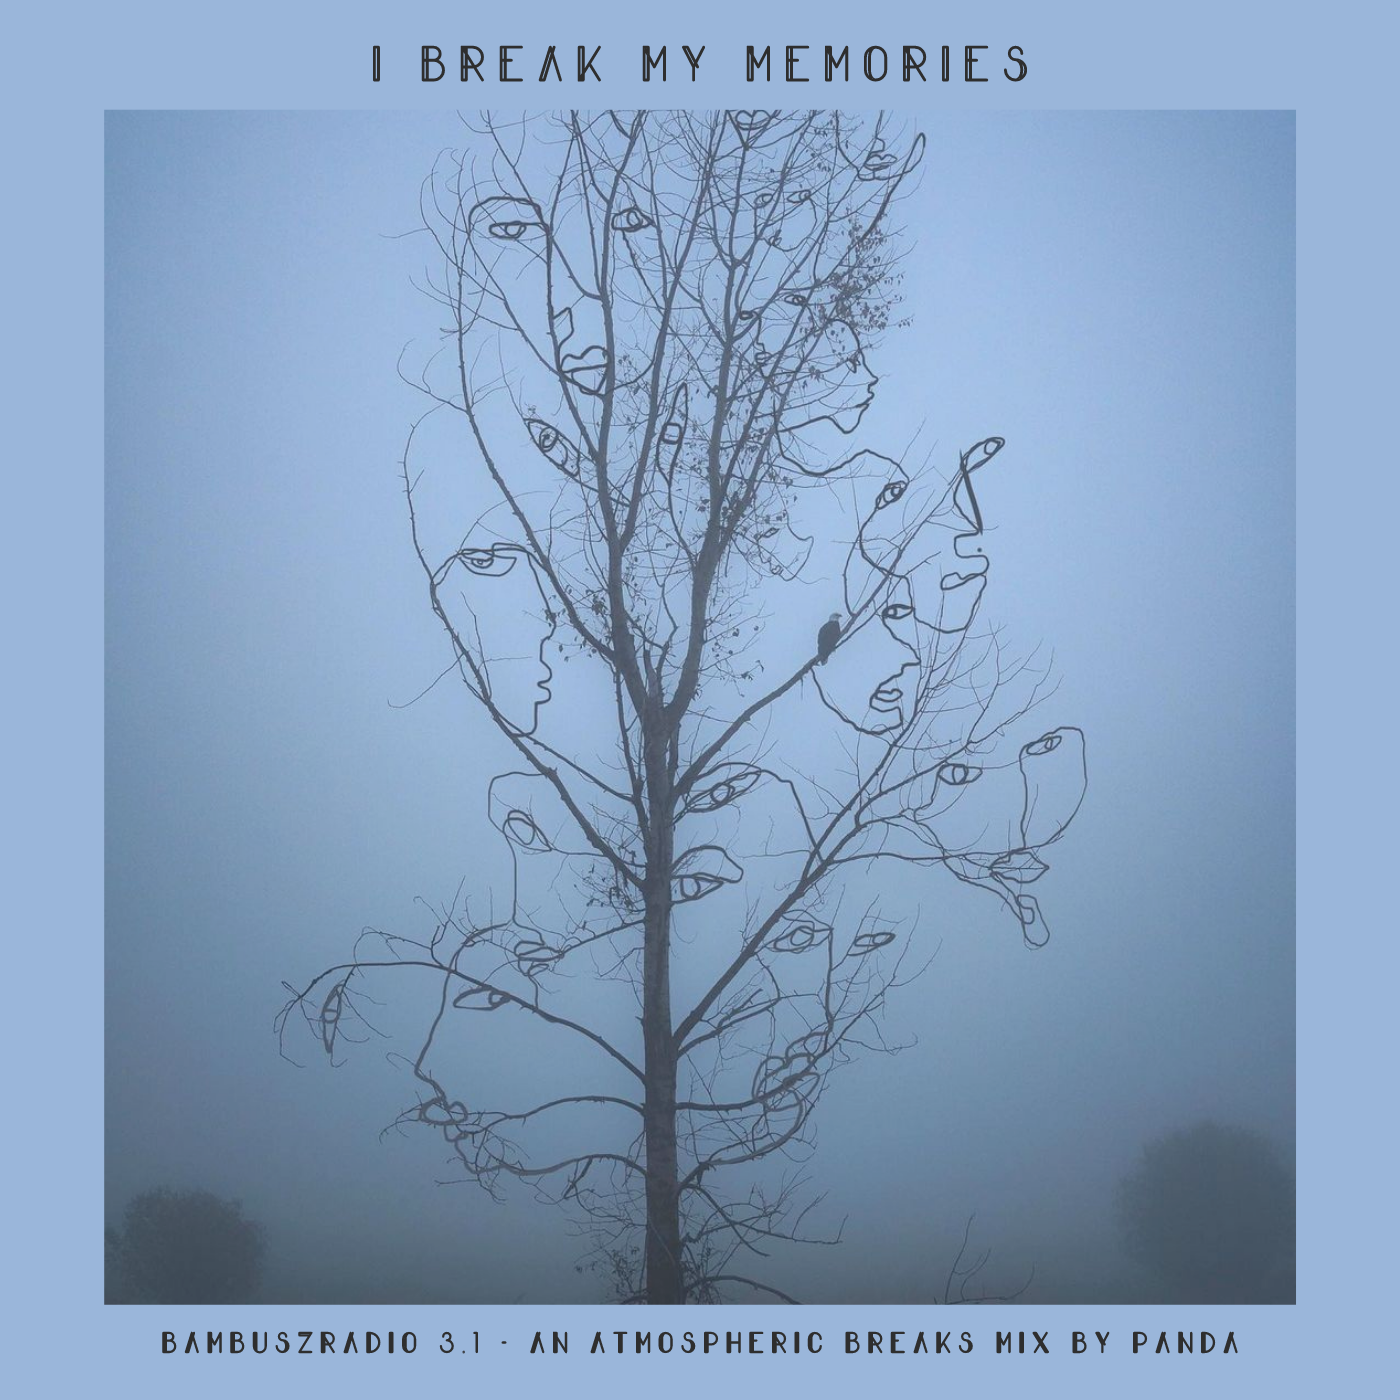 3.1 - I Break My Memories